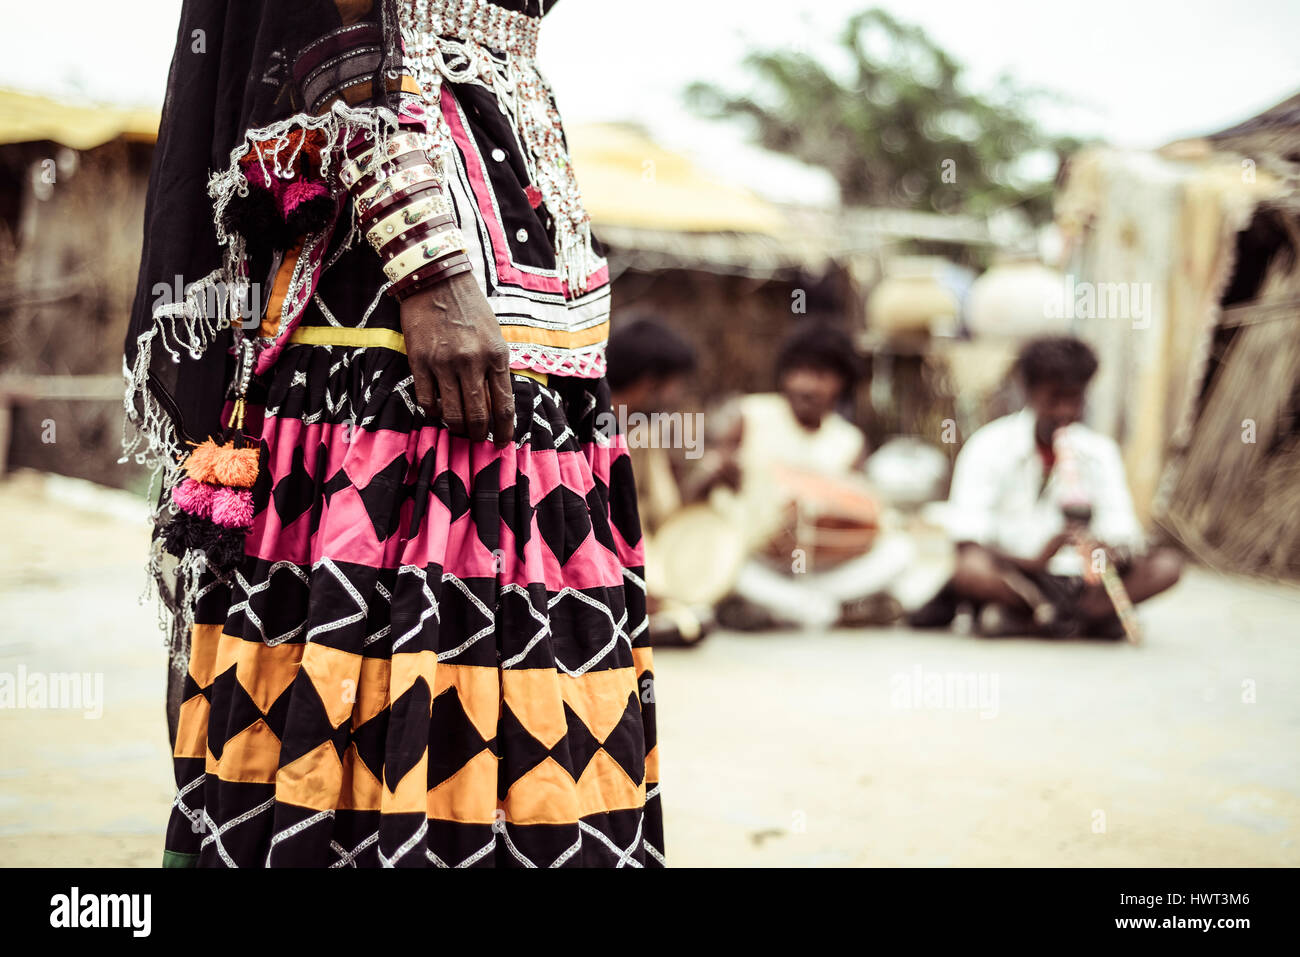 Midsection of woman in traditional clothing - Stock Image